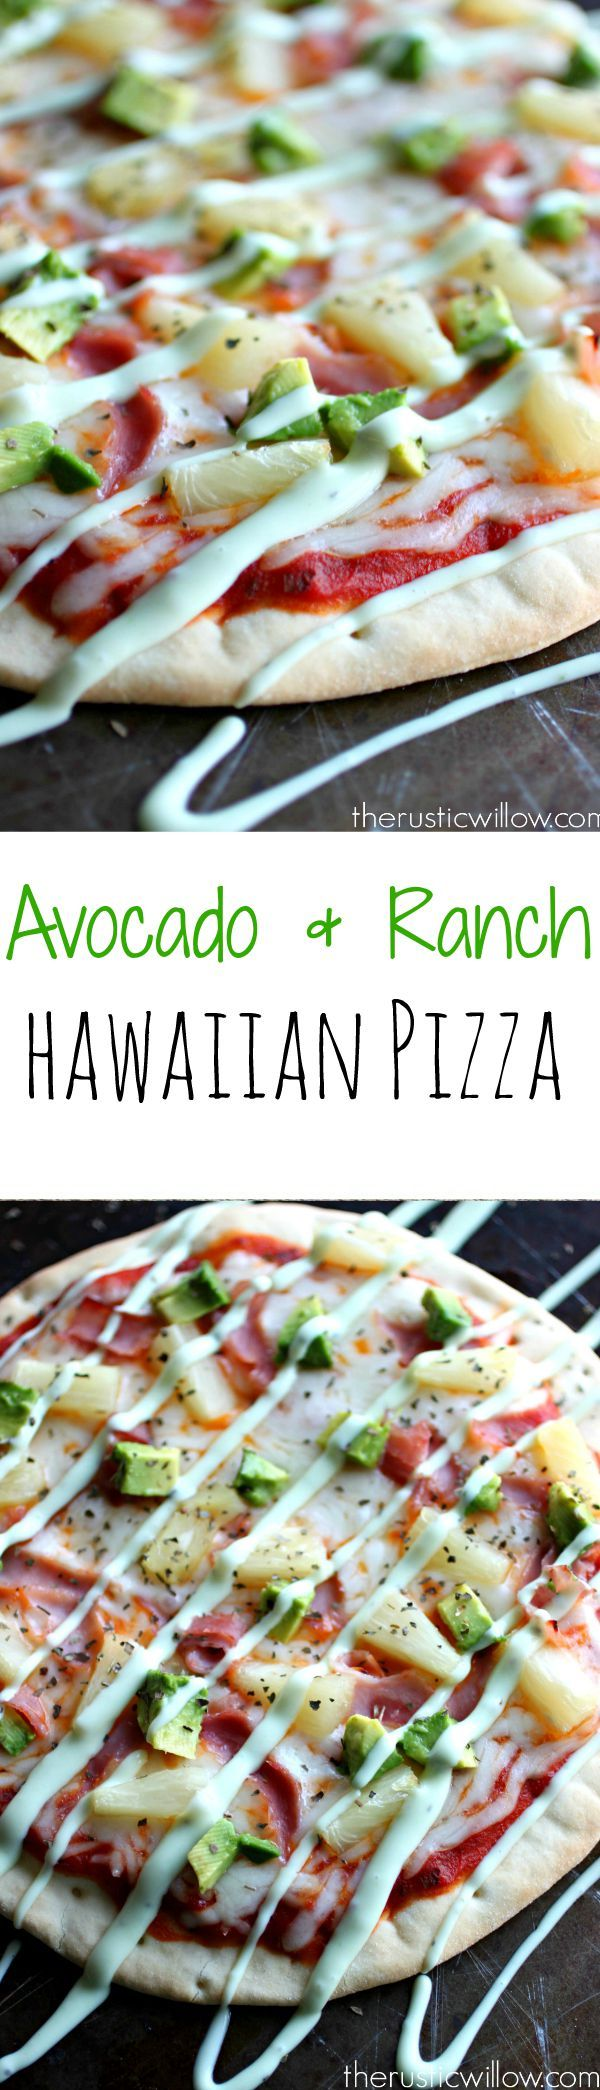 Incredibly delicious Hawaiian Pizza topped with avocado and ranch   therusticwillow.com